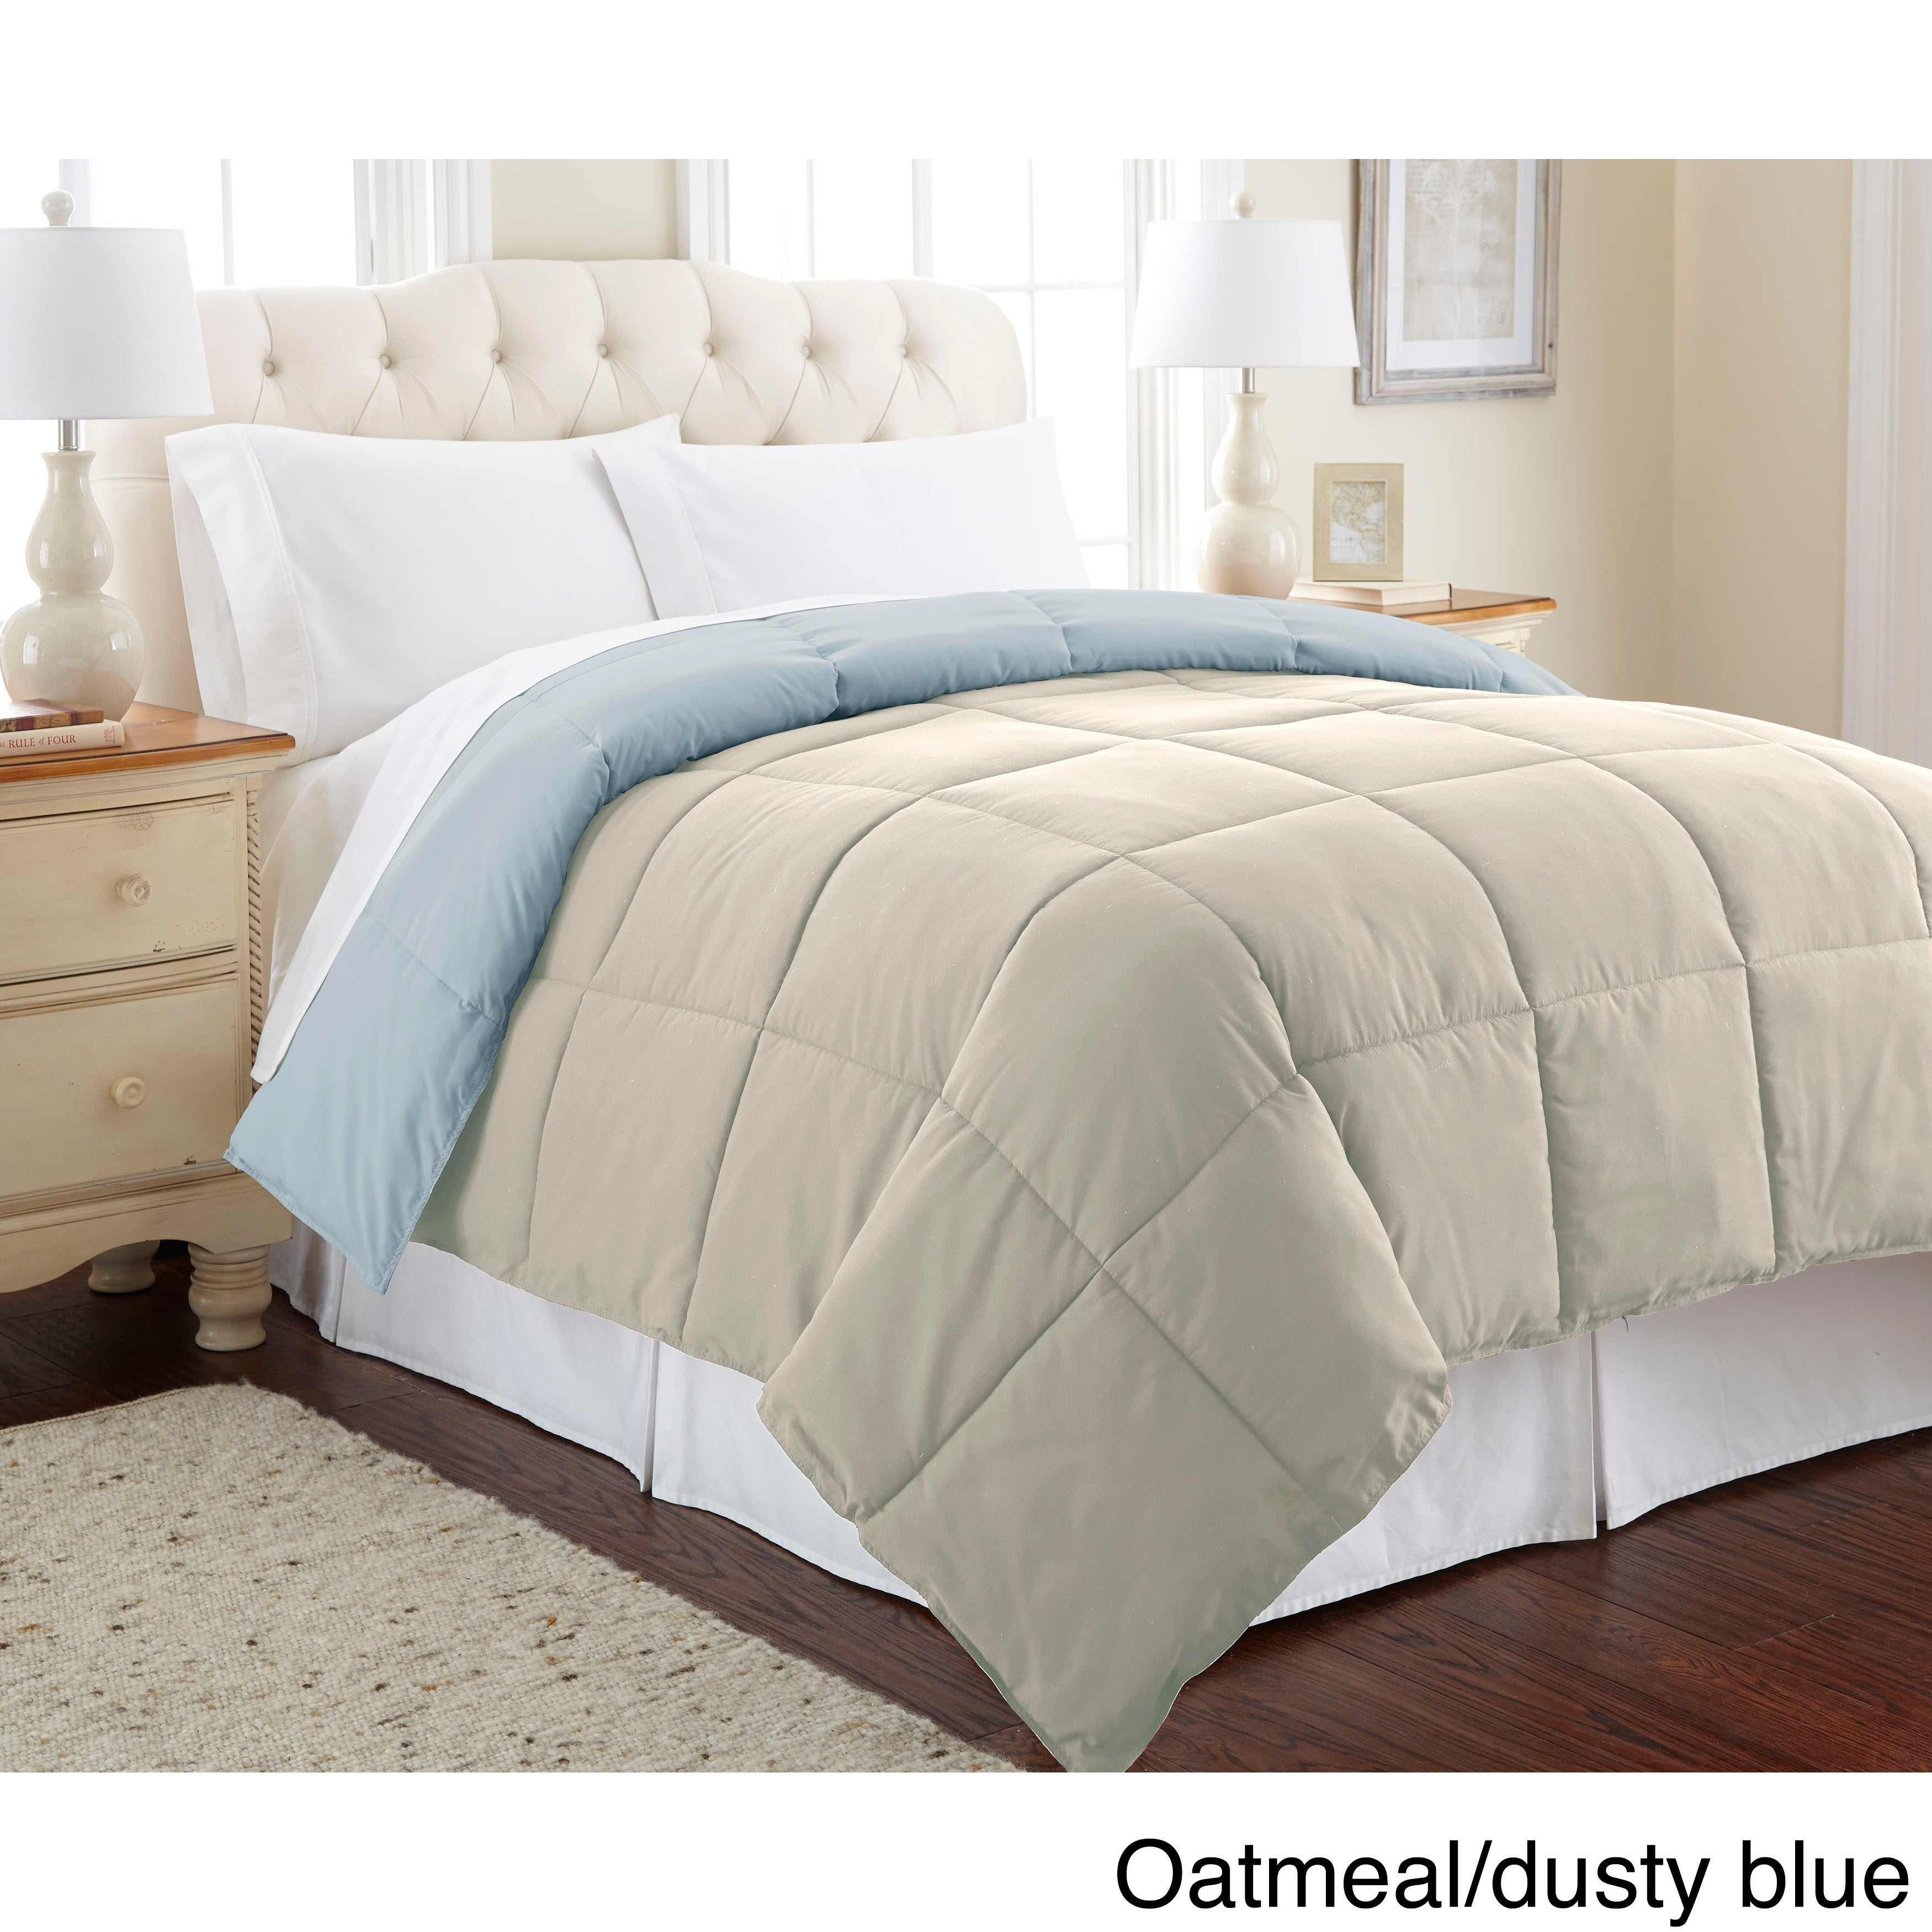 overstock home down collection gardenia shipping bedding comforter today bath reviews designs free fashion all season luxury alternative product